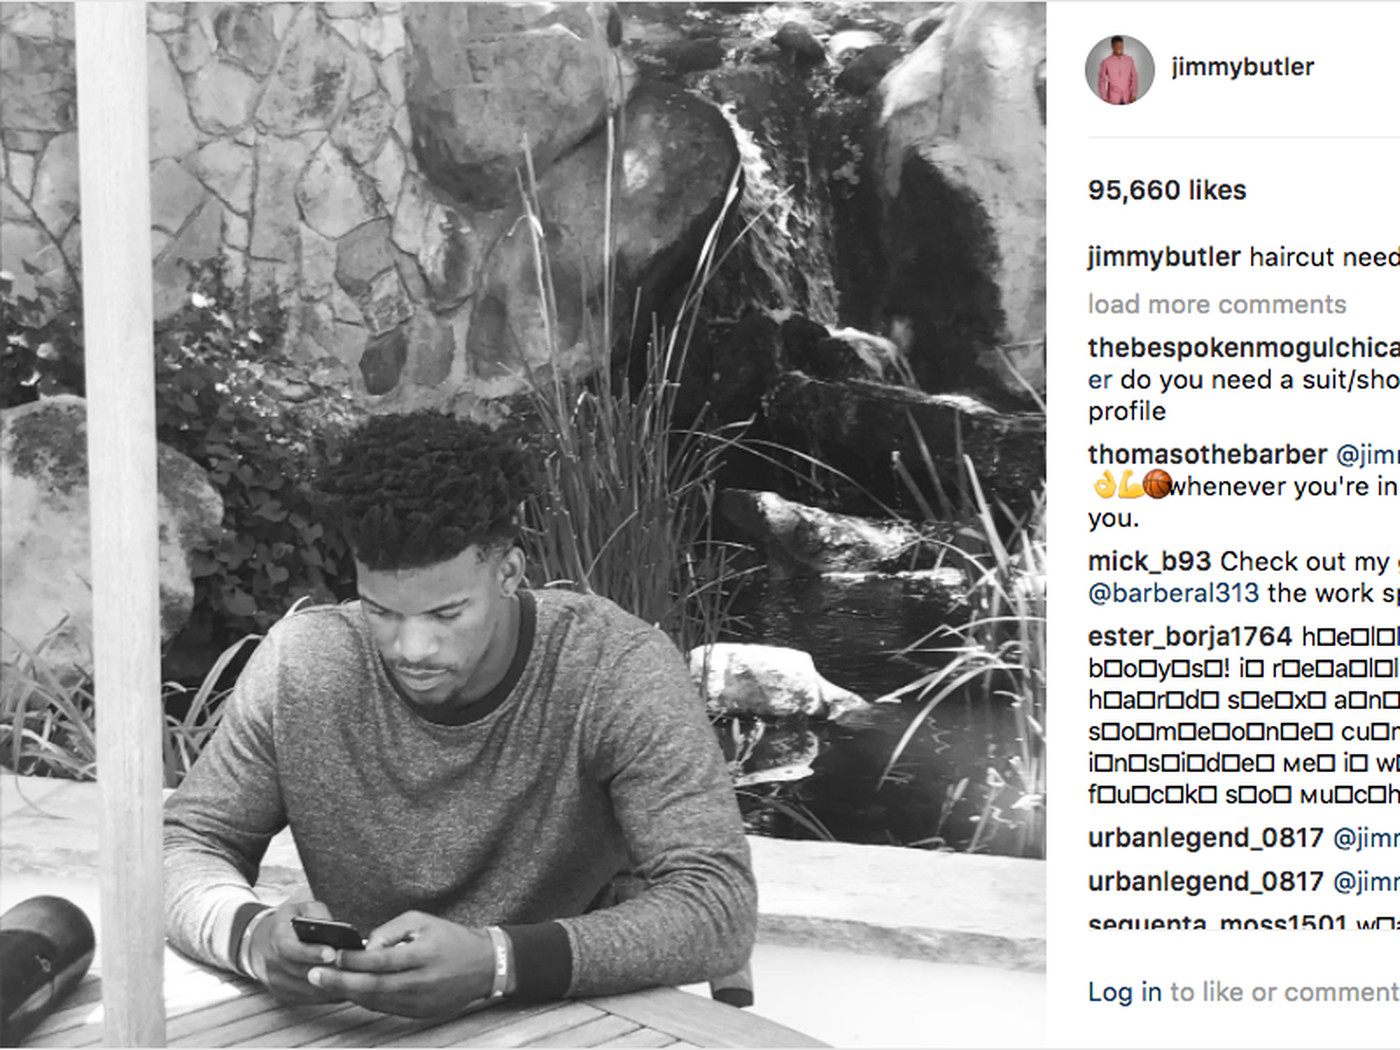 Jimmy Butler Went Off On Deandre Jordan After He Made Fun Of His